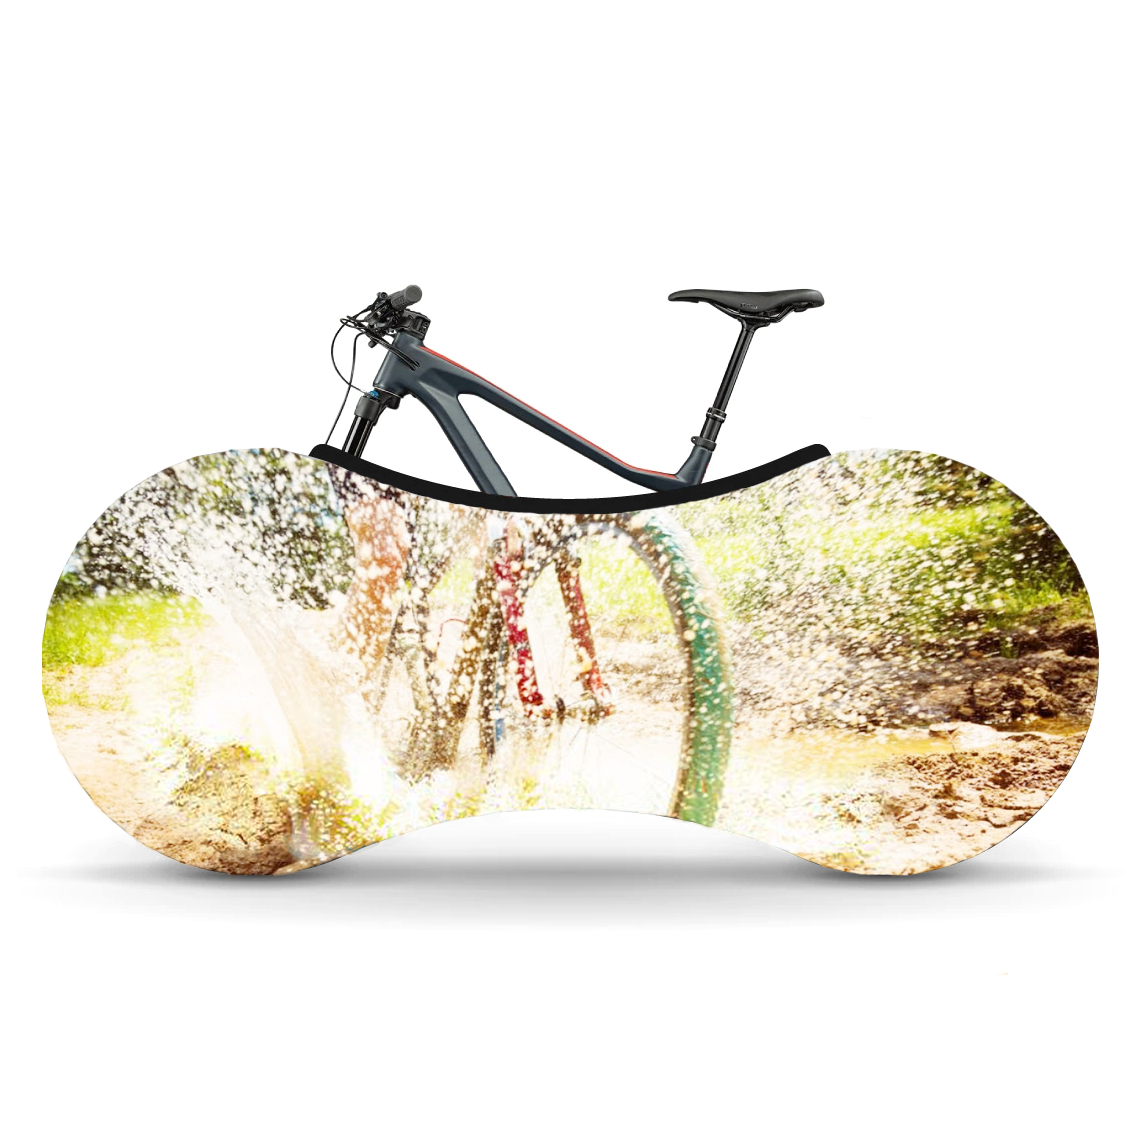 Indoor Bike Water Resistant Anti Dust Wheels Cover for Storage and Transportation - Off-Road Fun